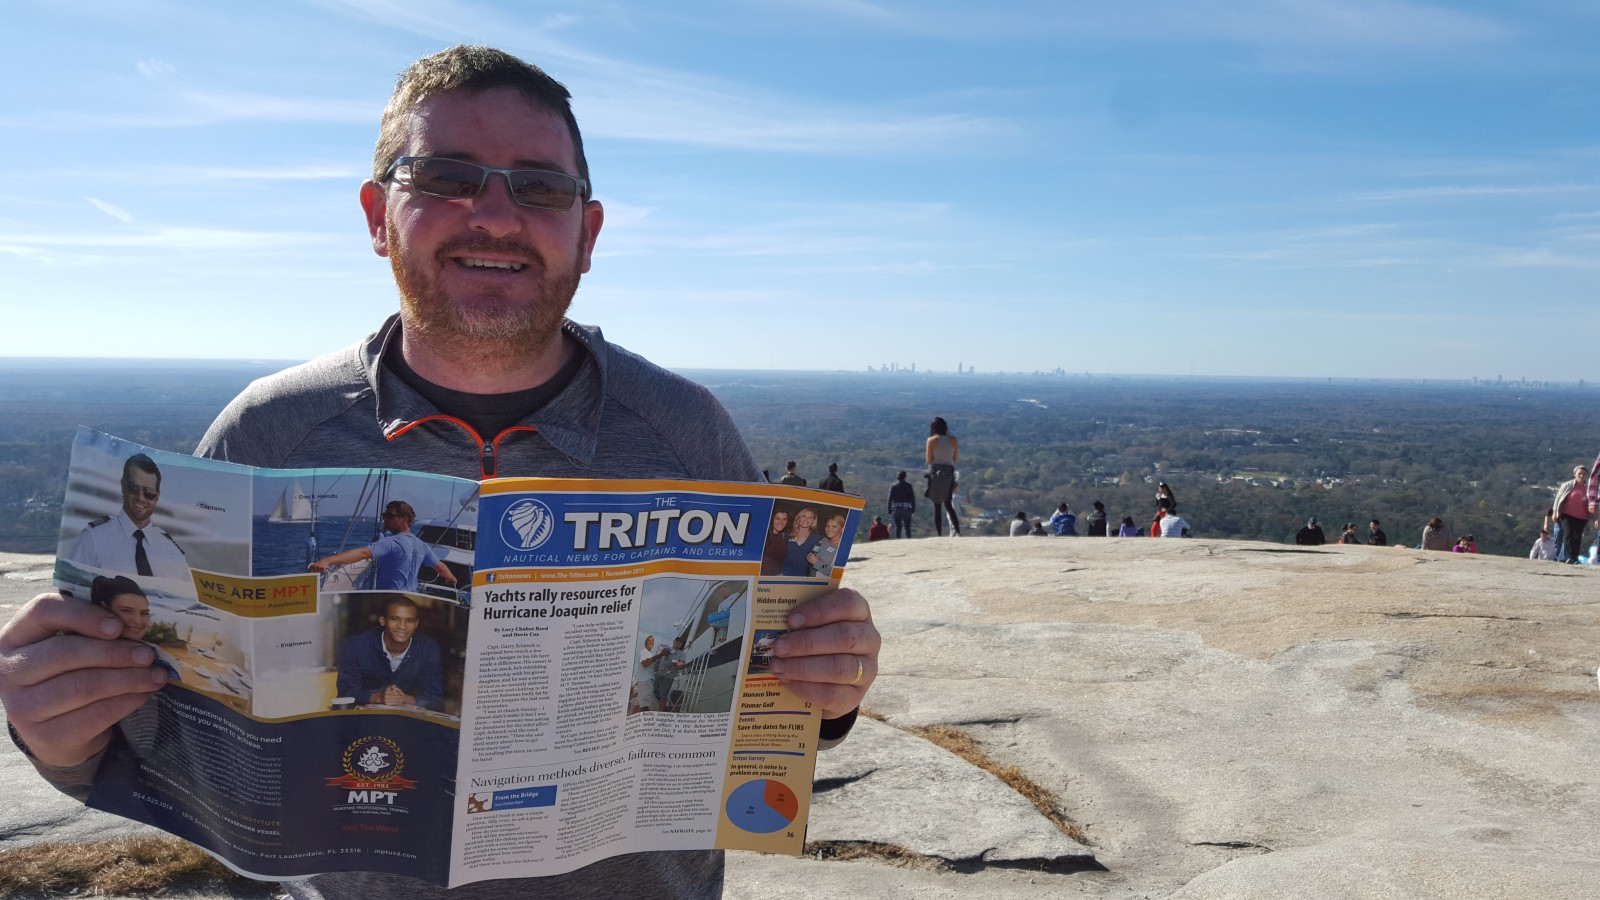 Thomas McGowan, owner of Engineered Yacht Solutions, took his Triton on holiday with him to the top of Stone Mountain in Georgia. That's downtown Atlanta in the background. Engineered Yacht Solutions is based at Lauderdale Marine Center in Ft. Lauderdale and does metal fabrication, welding and plumbing.